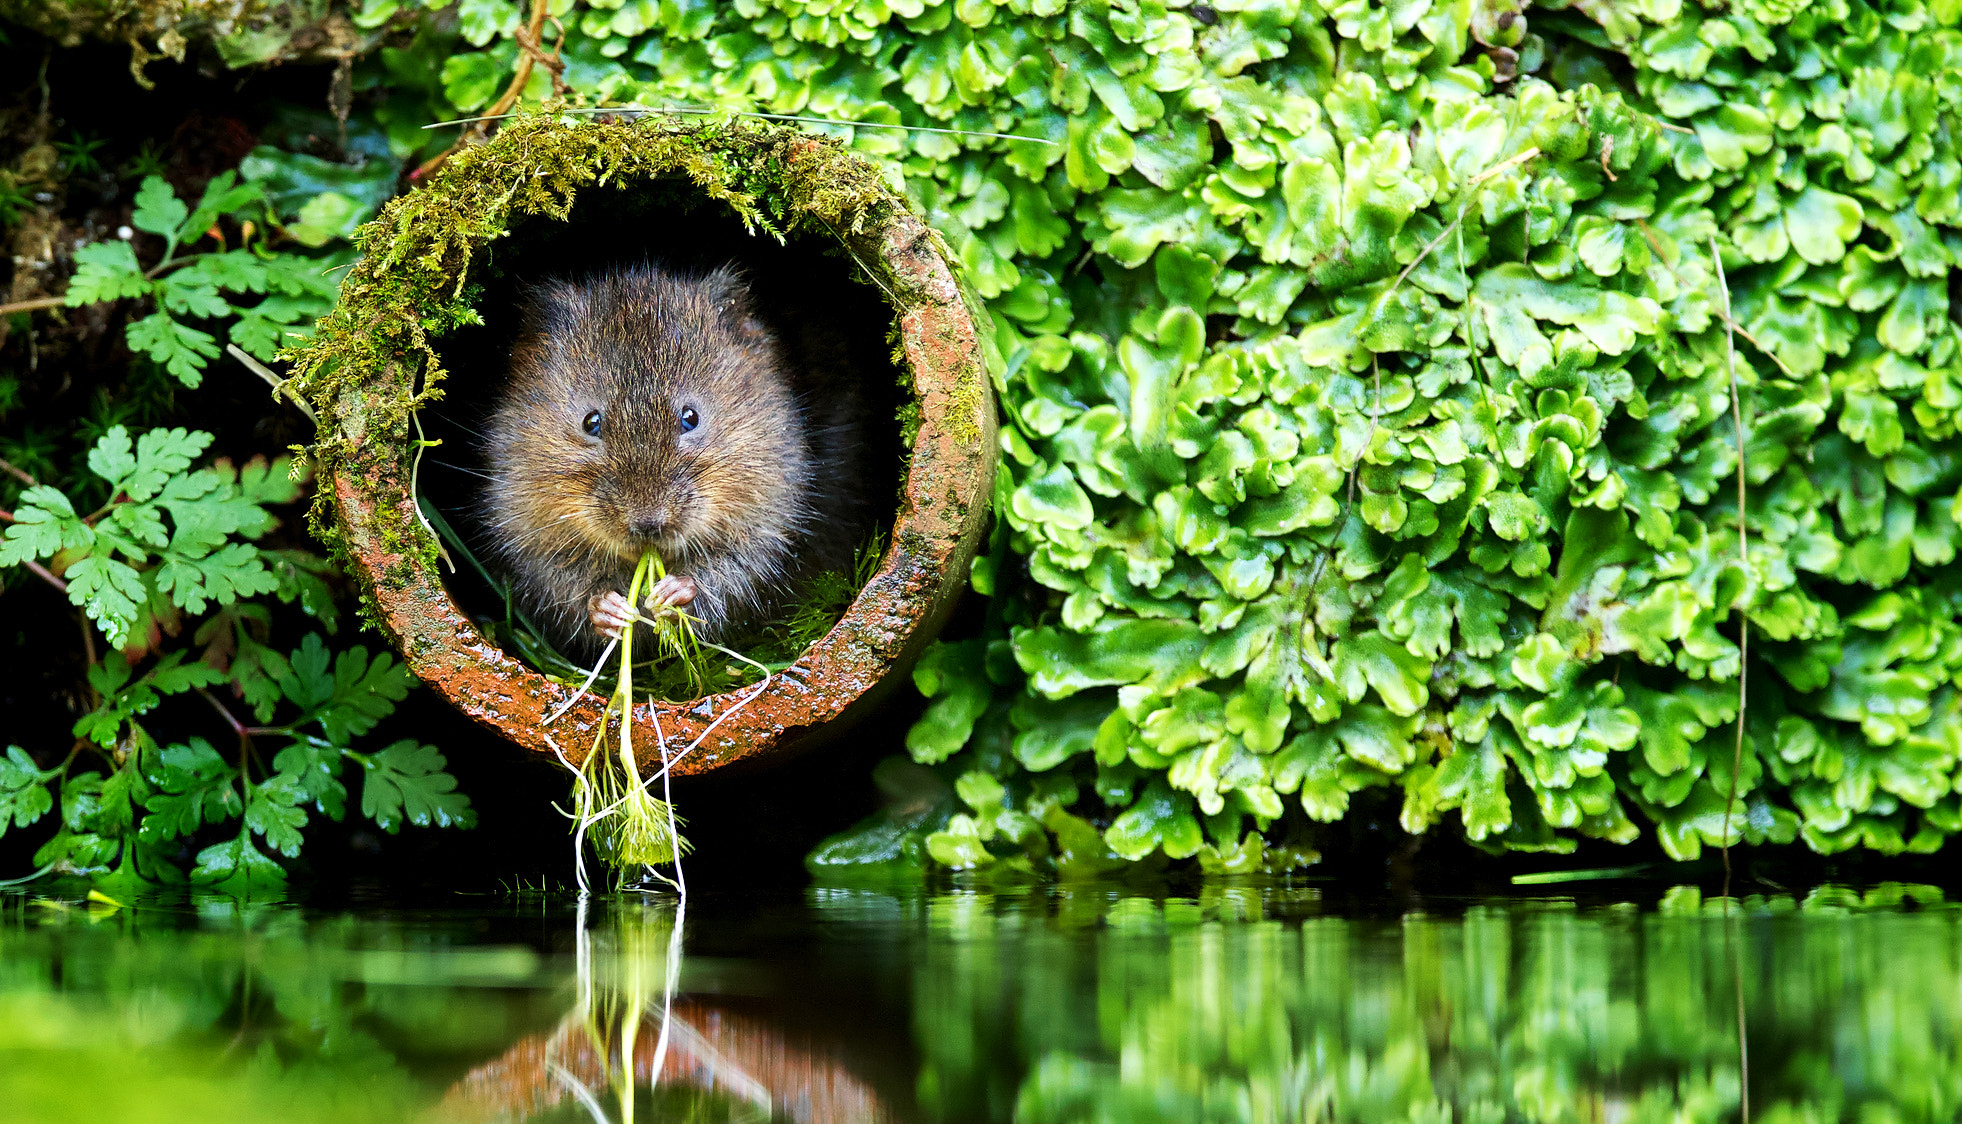 Photograph Vole in a Hole by Mark Bridger on 500px